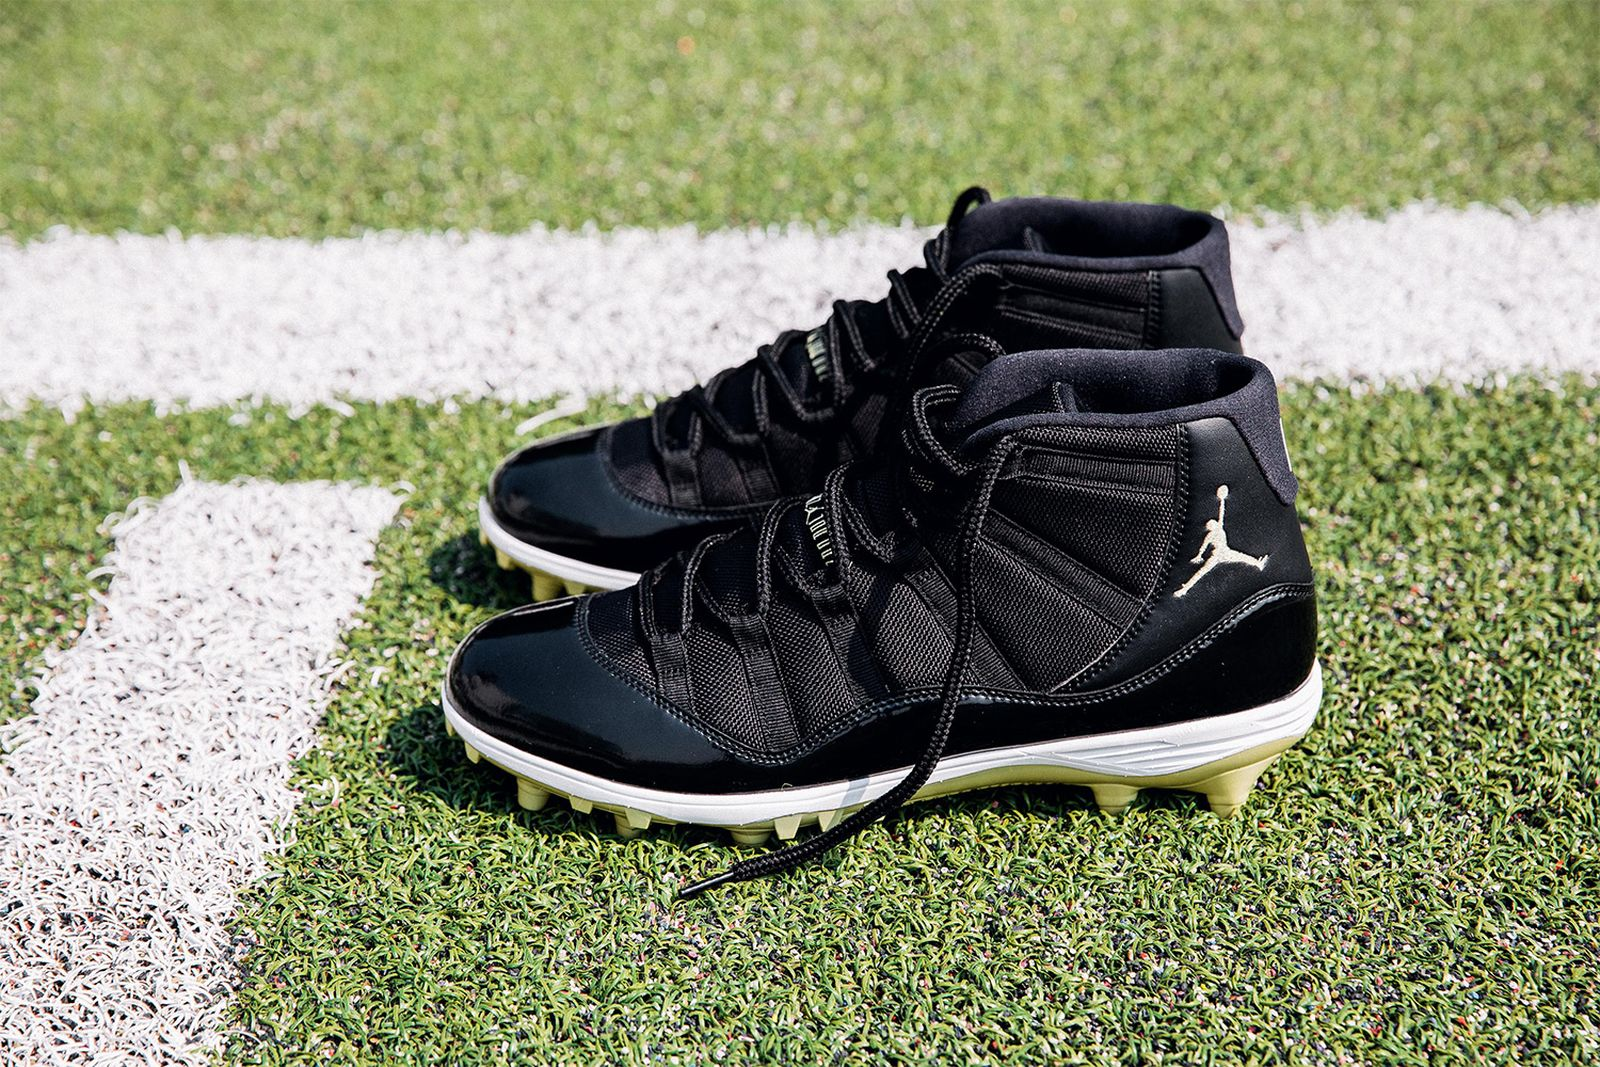 jordan nfl cleats Air Jordan 11 Cleat Nike jordan brand